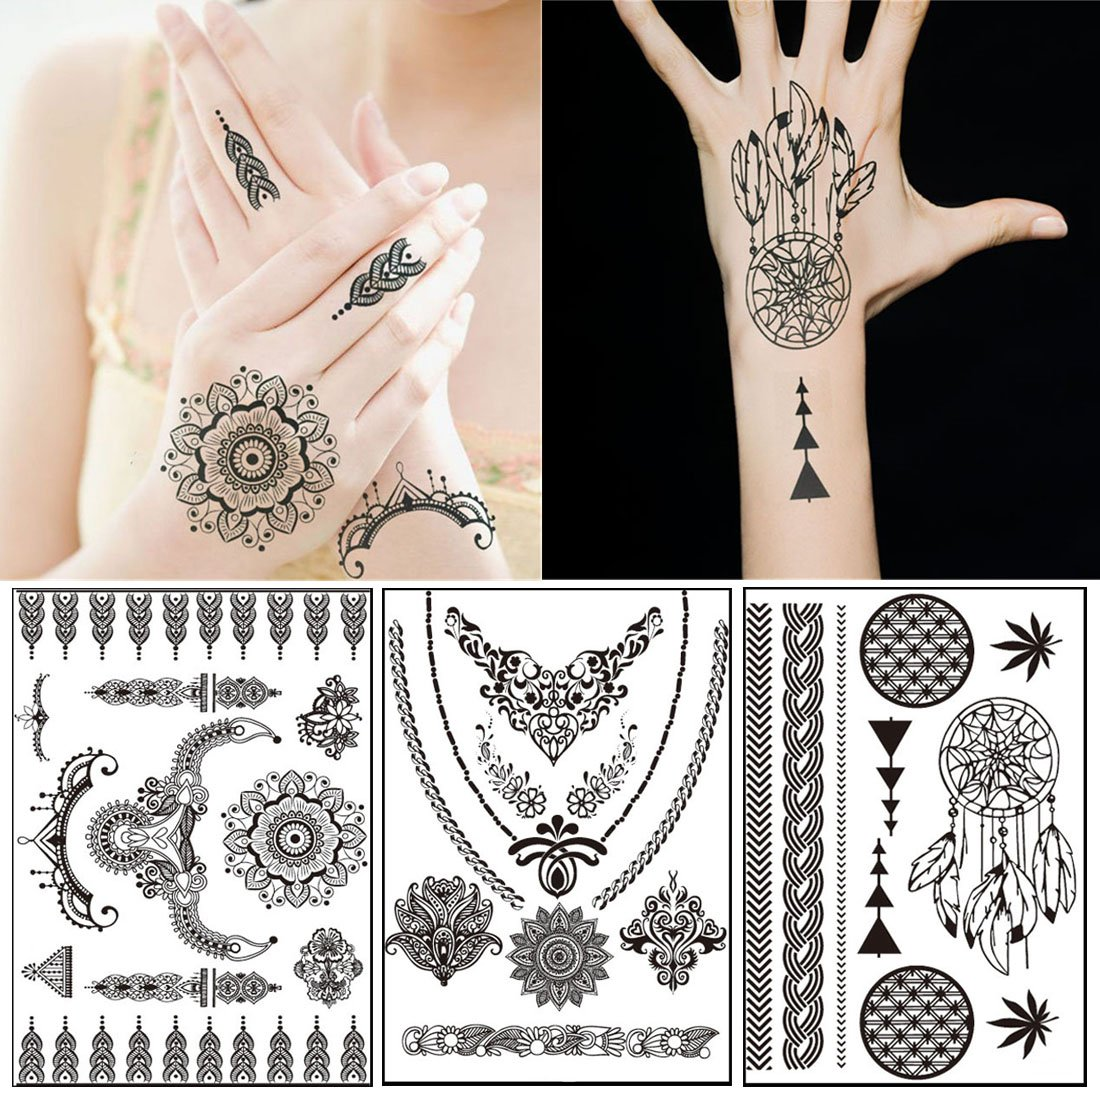 a0d7e9dbd 10 Sheets Black Henna Lace Tattoos Temporary - Over 60+ Henna Designs,  Black Lace Style Body Art Stickers(5.9'' x 8.3''): Amazon.ca: Beauty